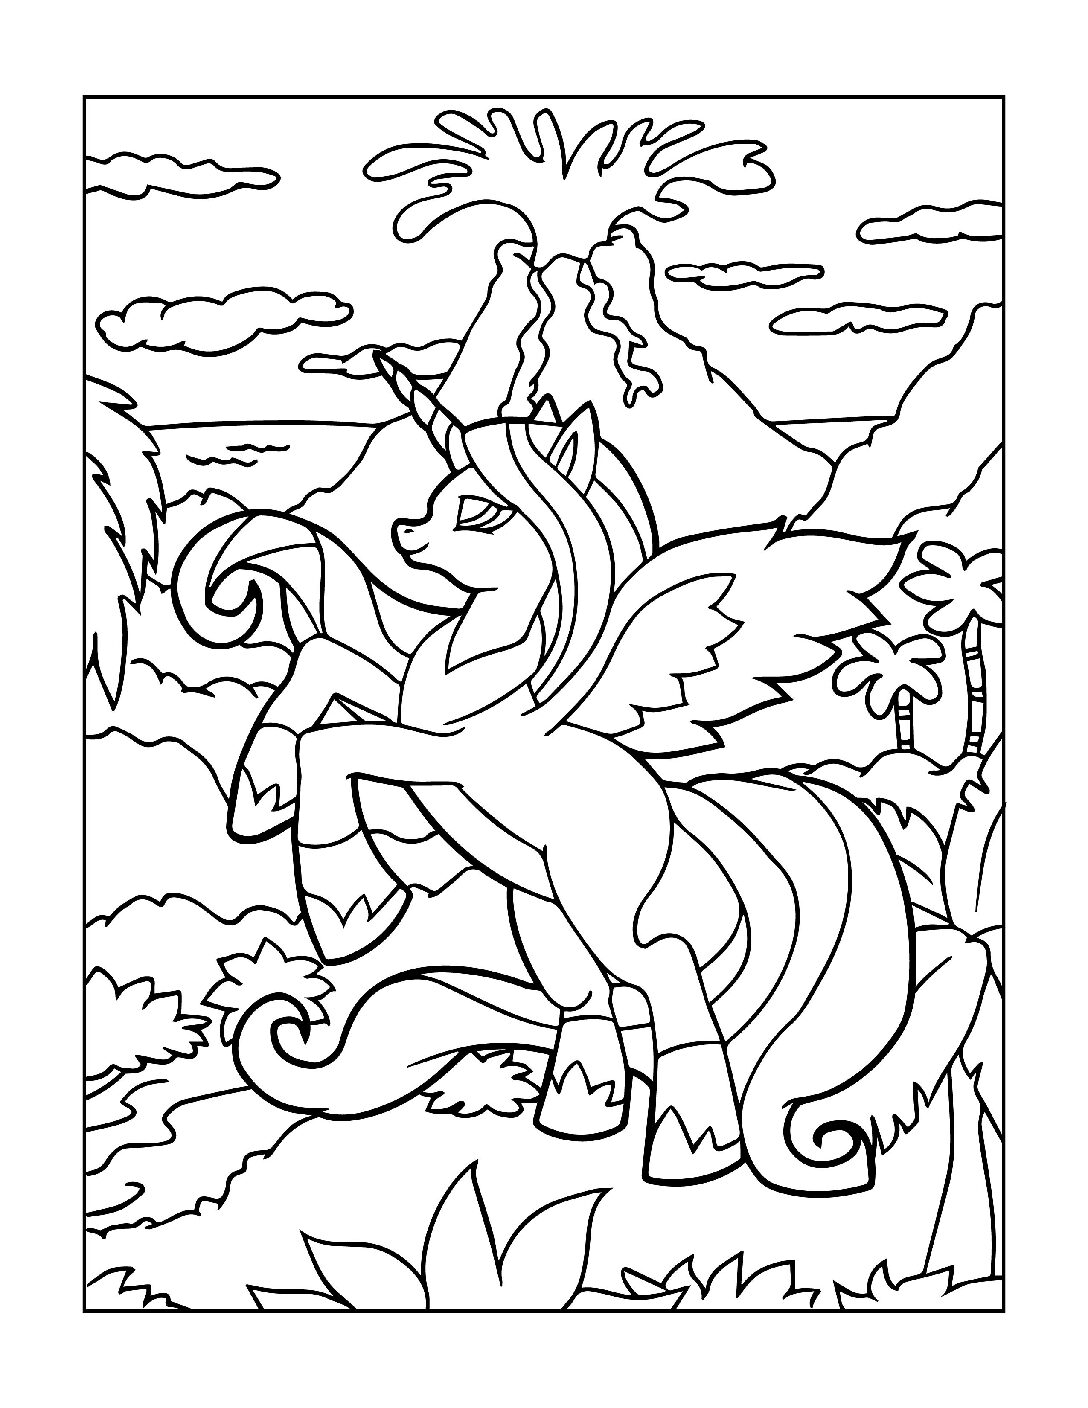 Coloring-Pages-Unicorns-7-pdf Free Printable Unicorn Colouring Pages